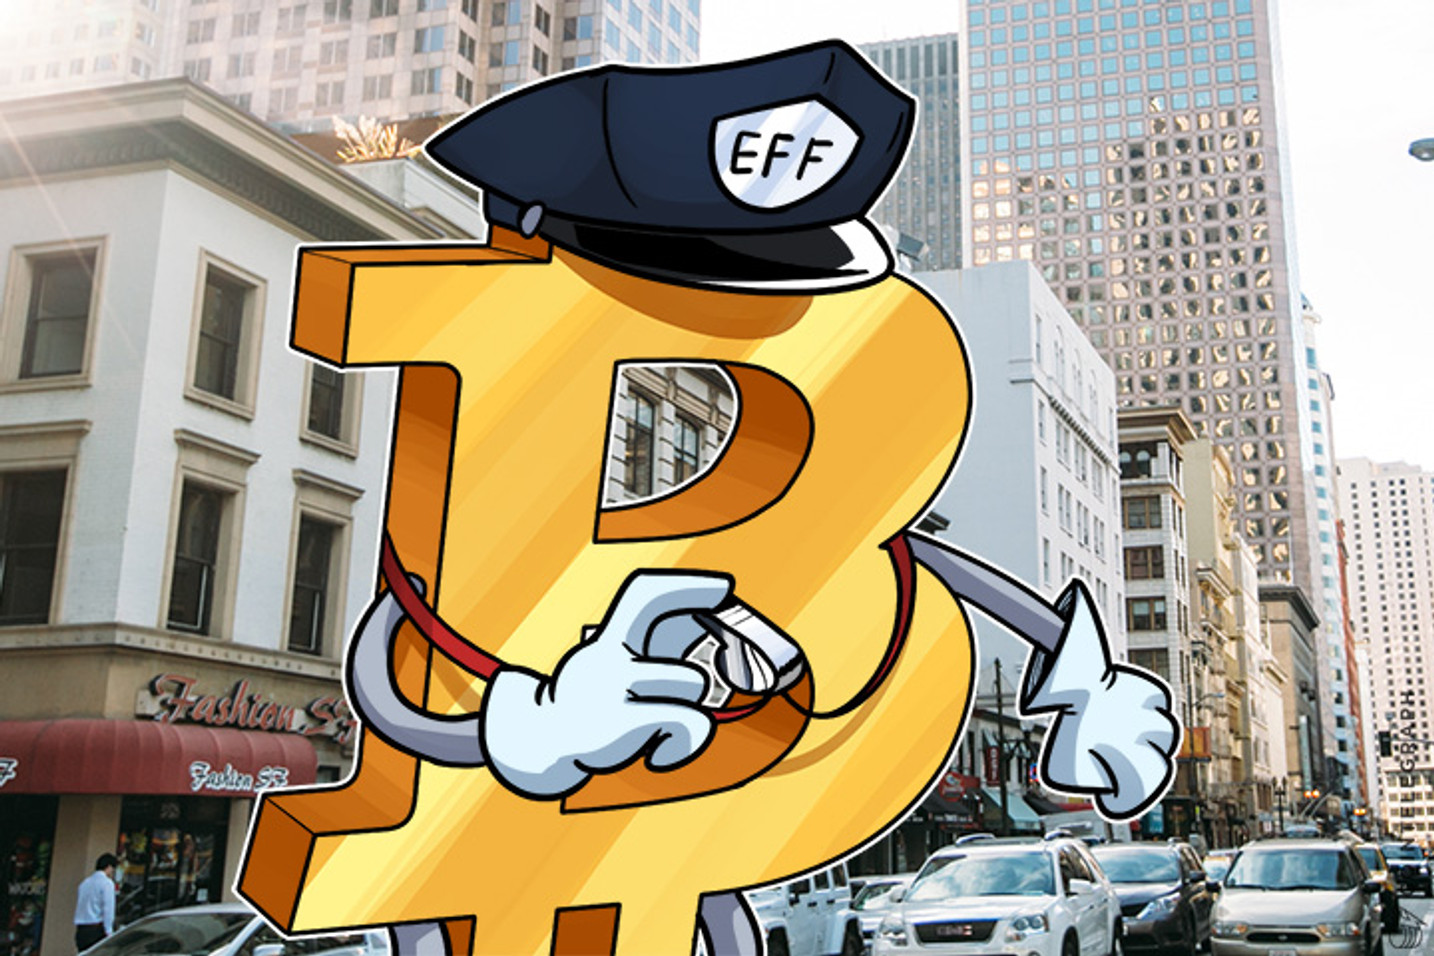 EFF Opposes California's Impractical Bitcoin Regulation BitLicense